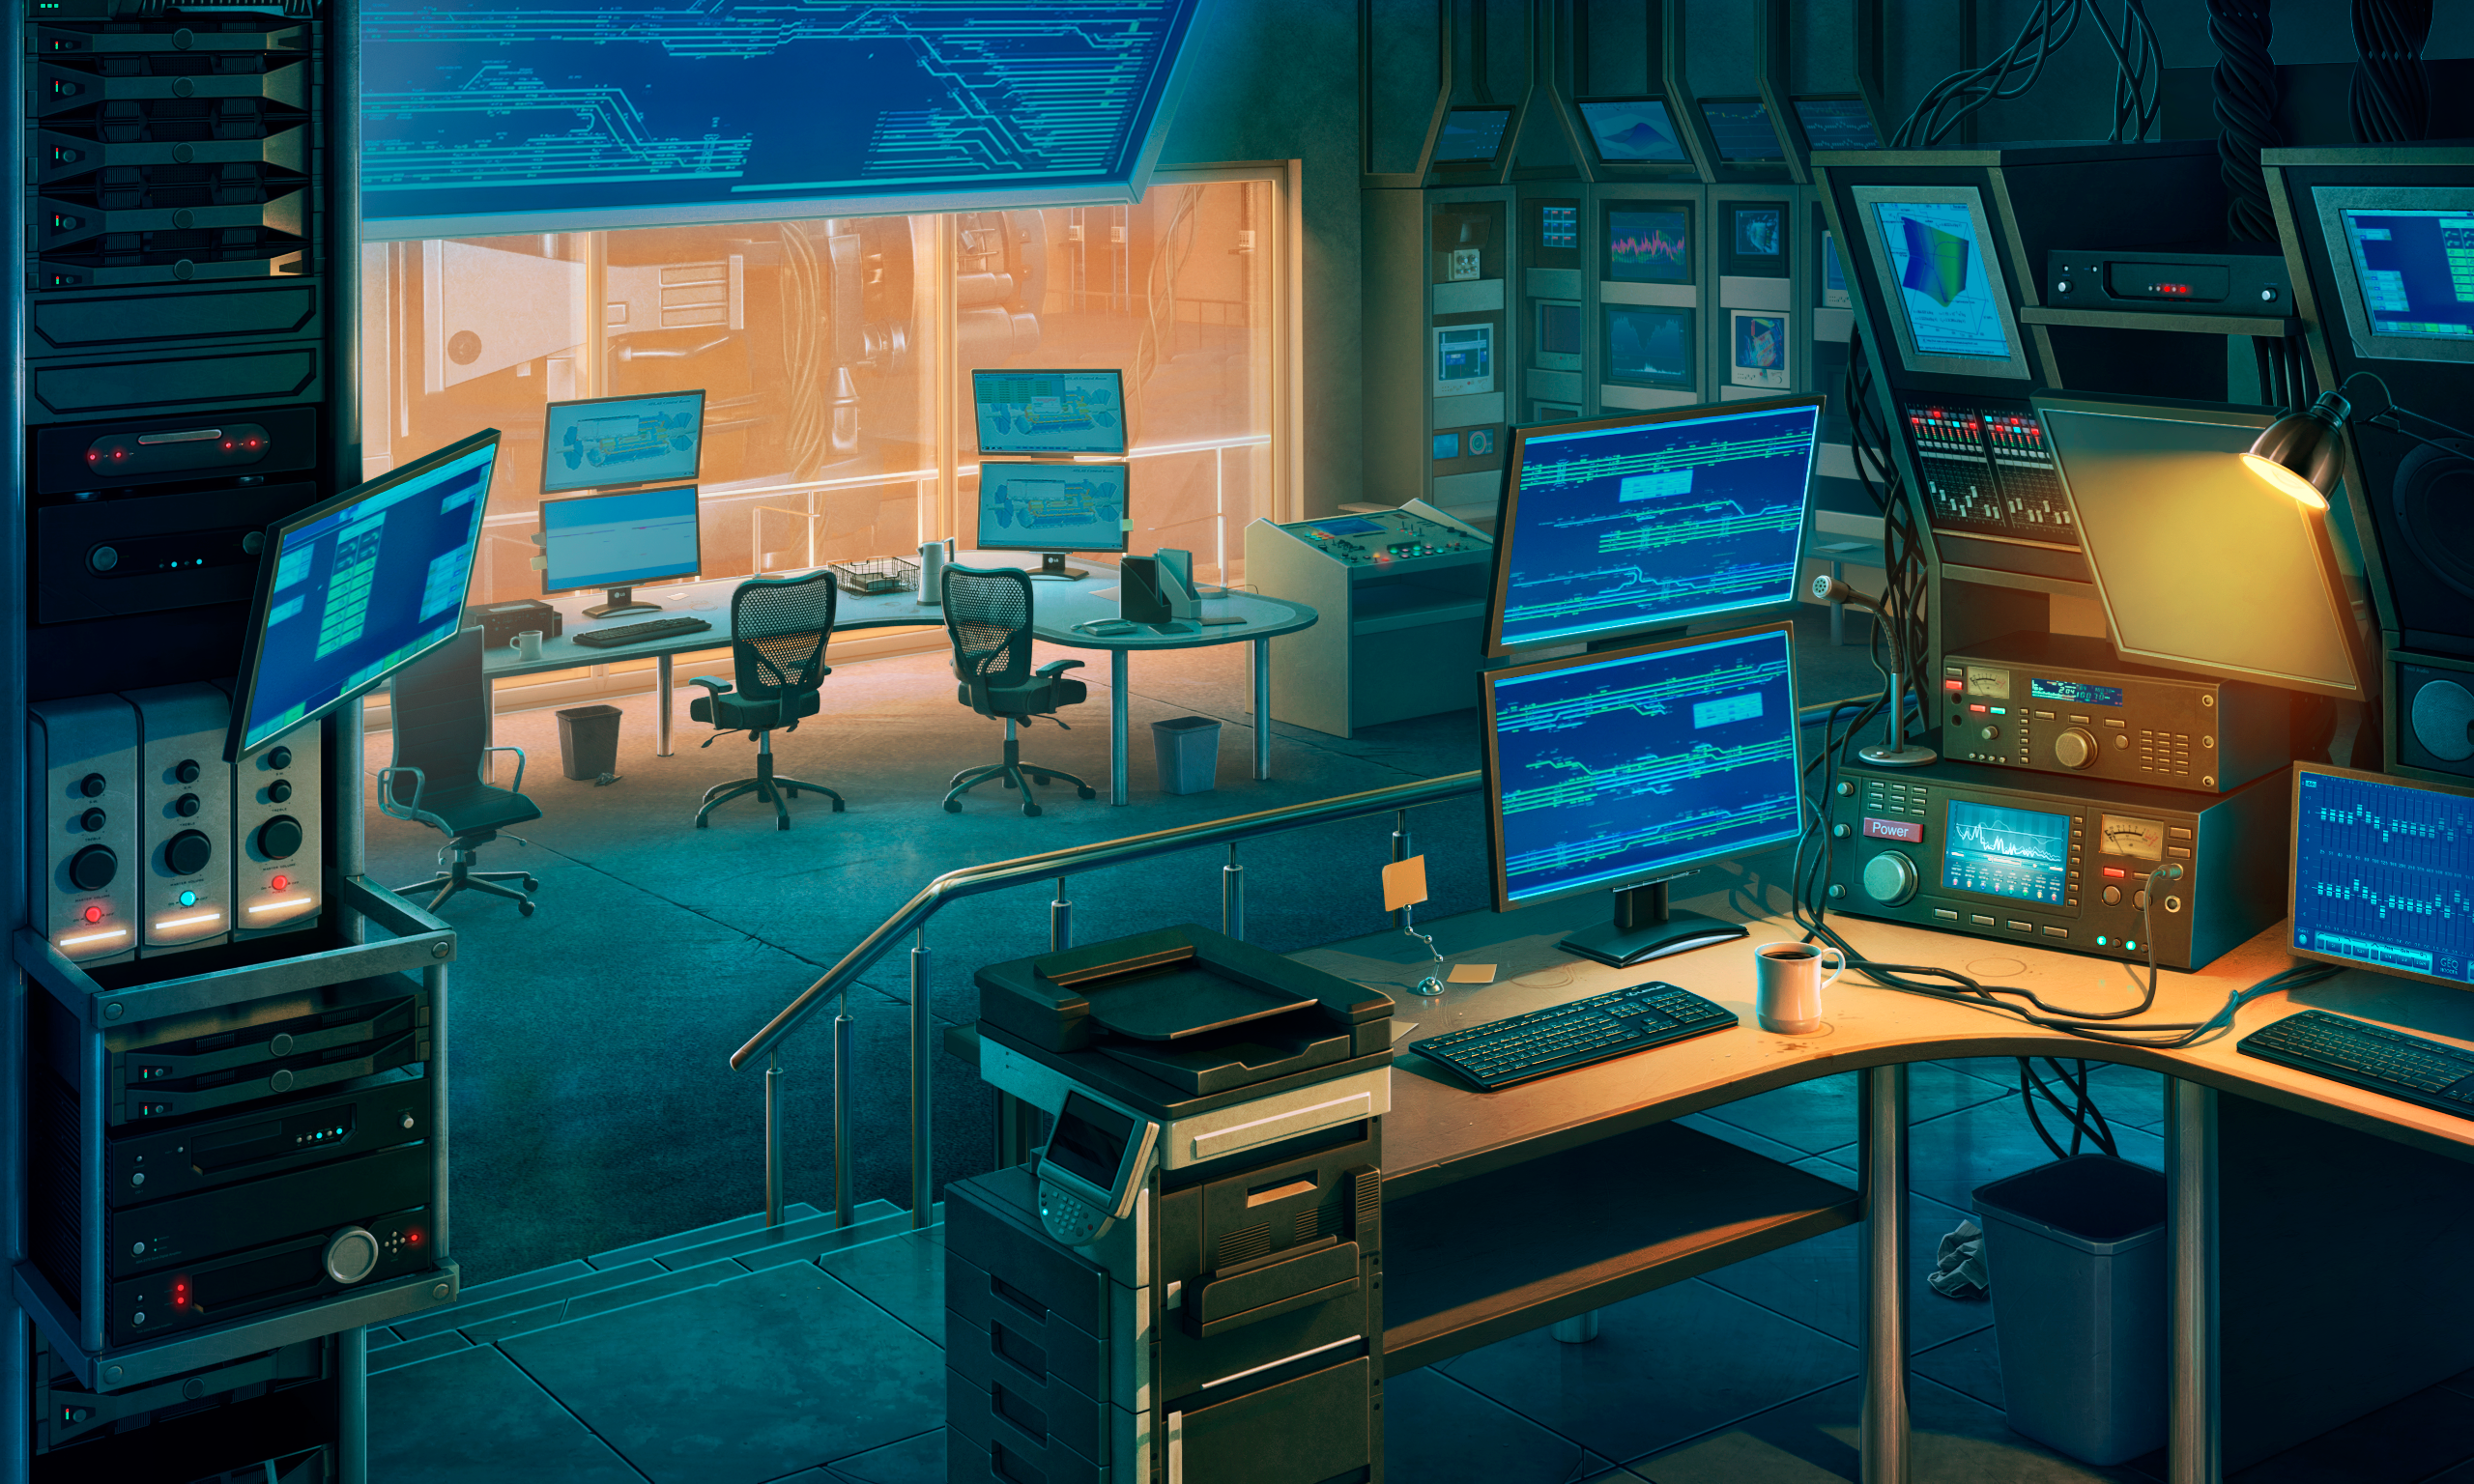 Command center xfiles background deepstate commandcenter 2560x1536